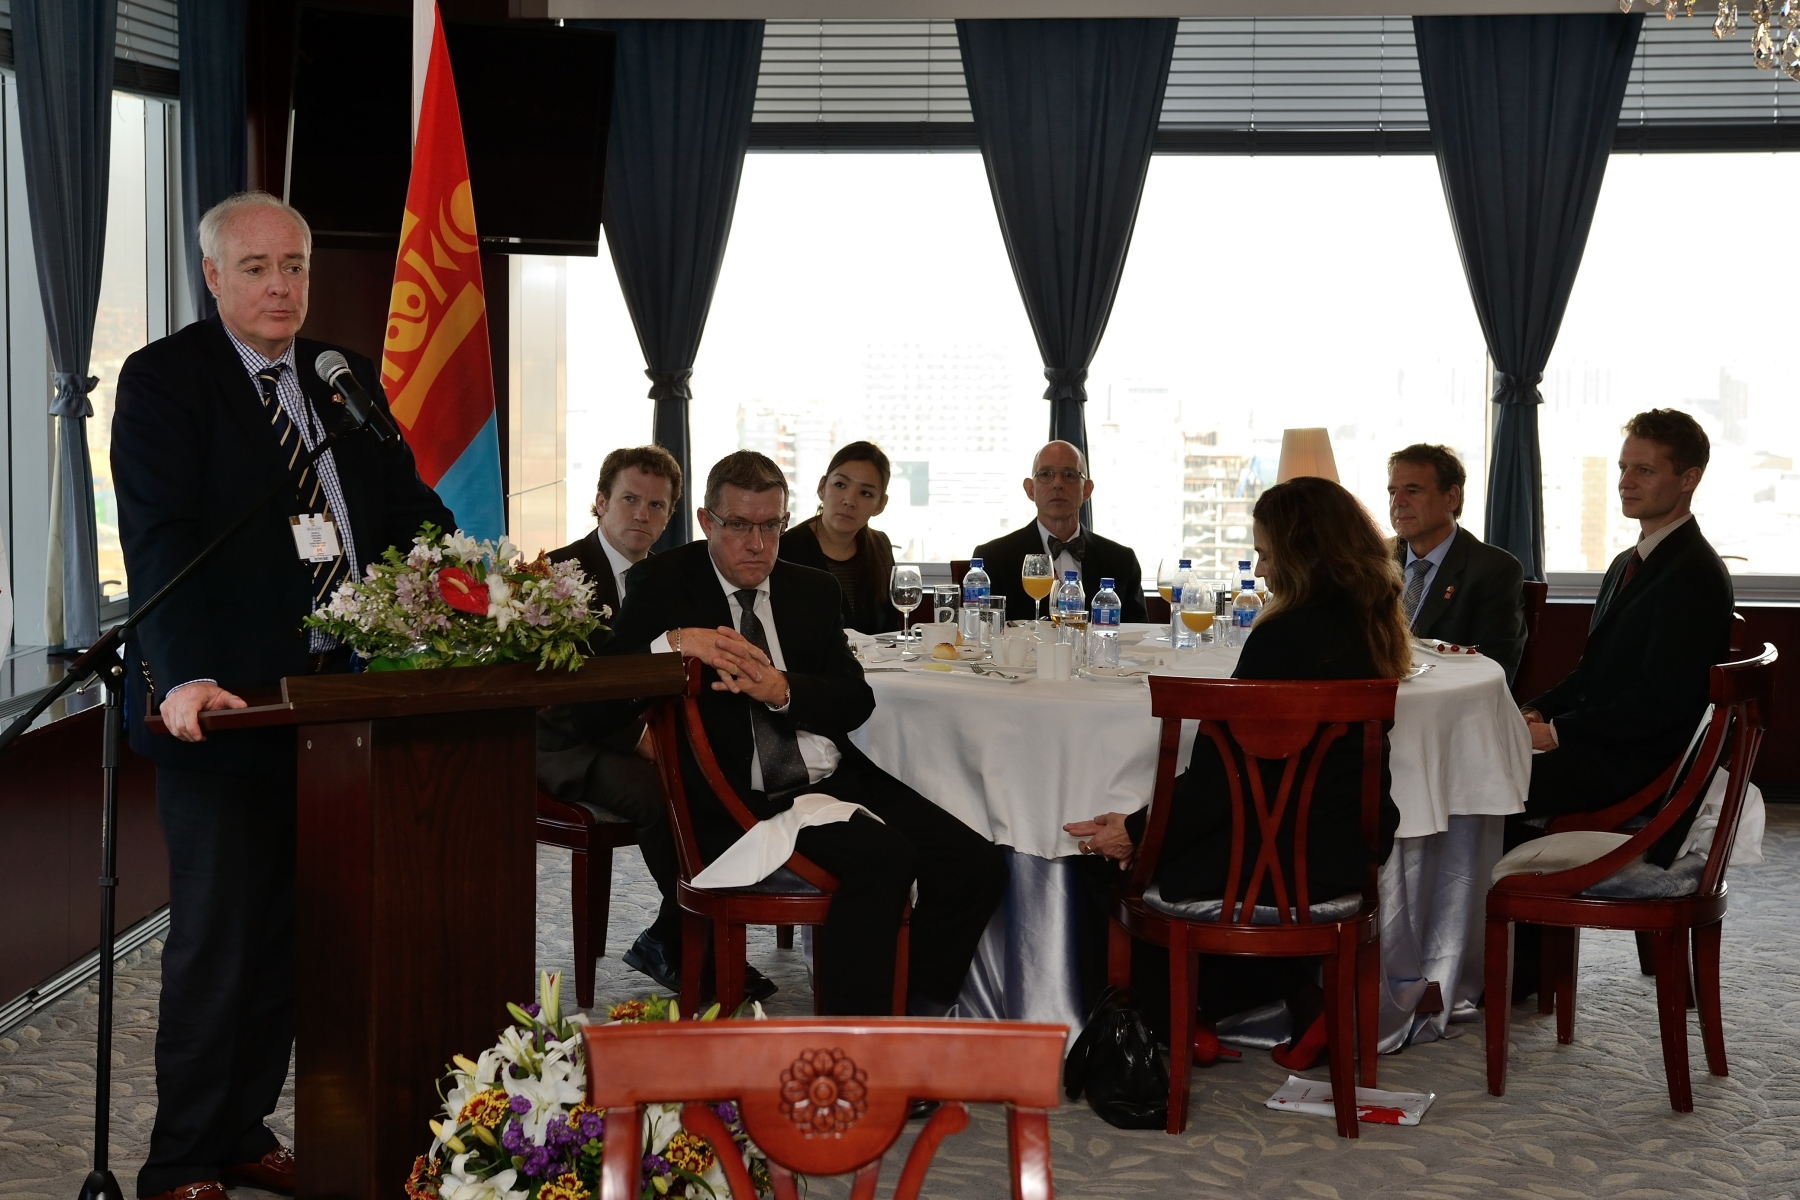 Together, those in attendance explored how Canada can continue to contribute to Mongolia's prosperity and democratic development.